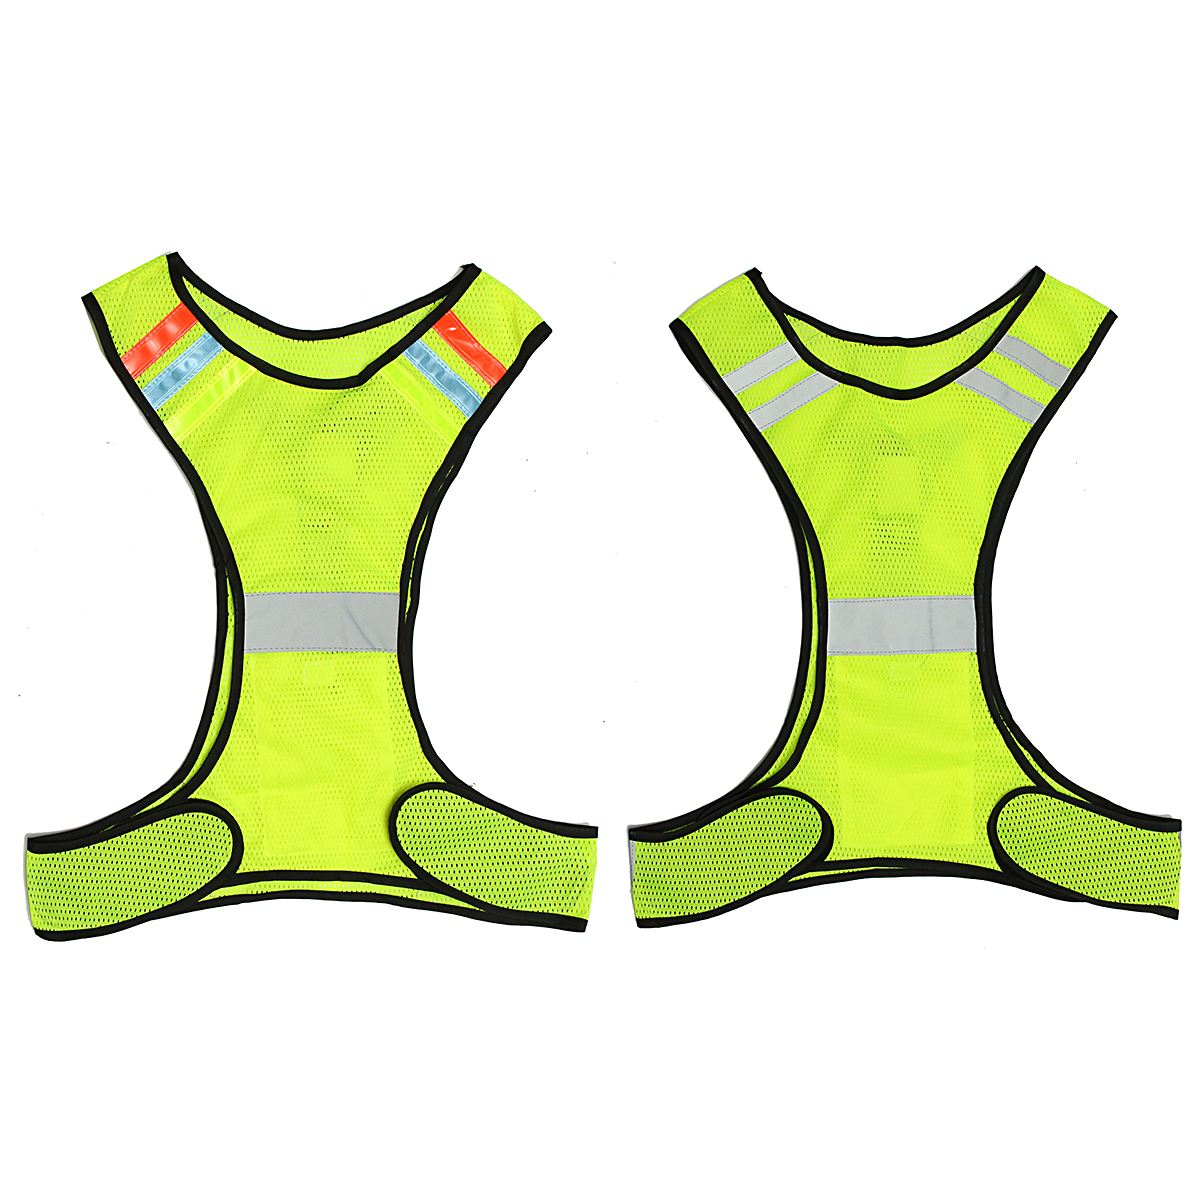 new led night running cycling reflective safety vest for. Black Bedroom Furniture Sets. Home Design Ideas